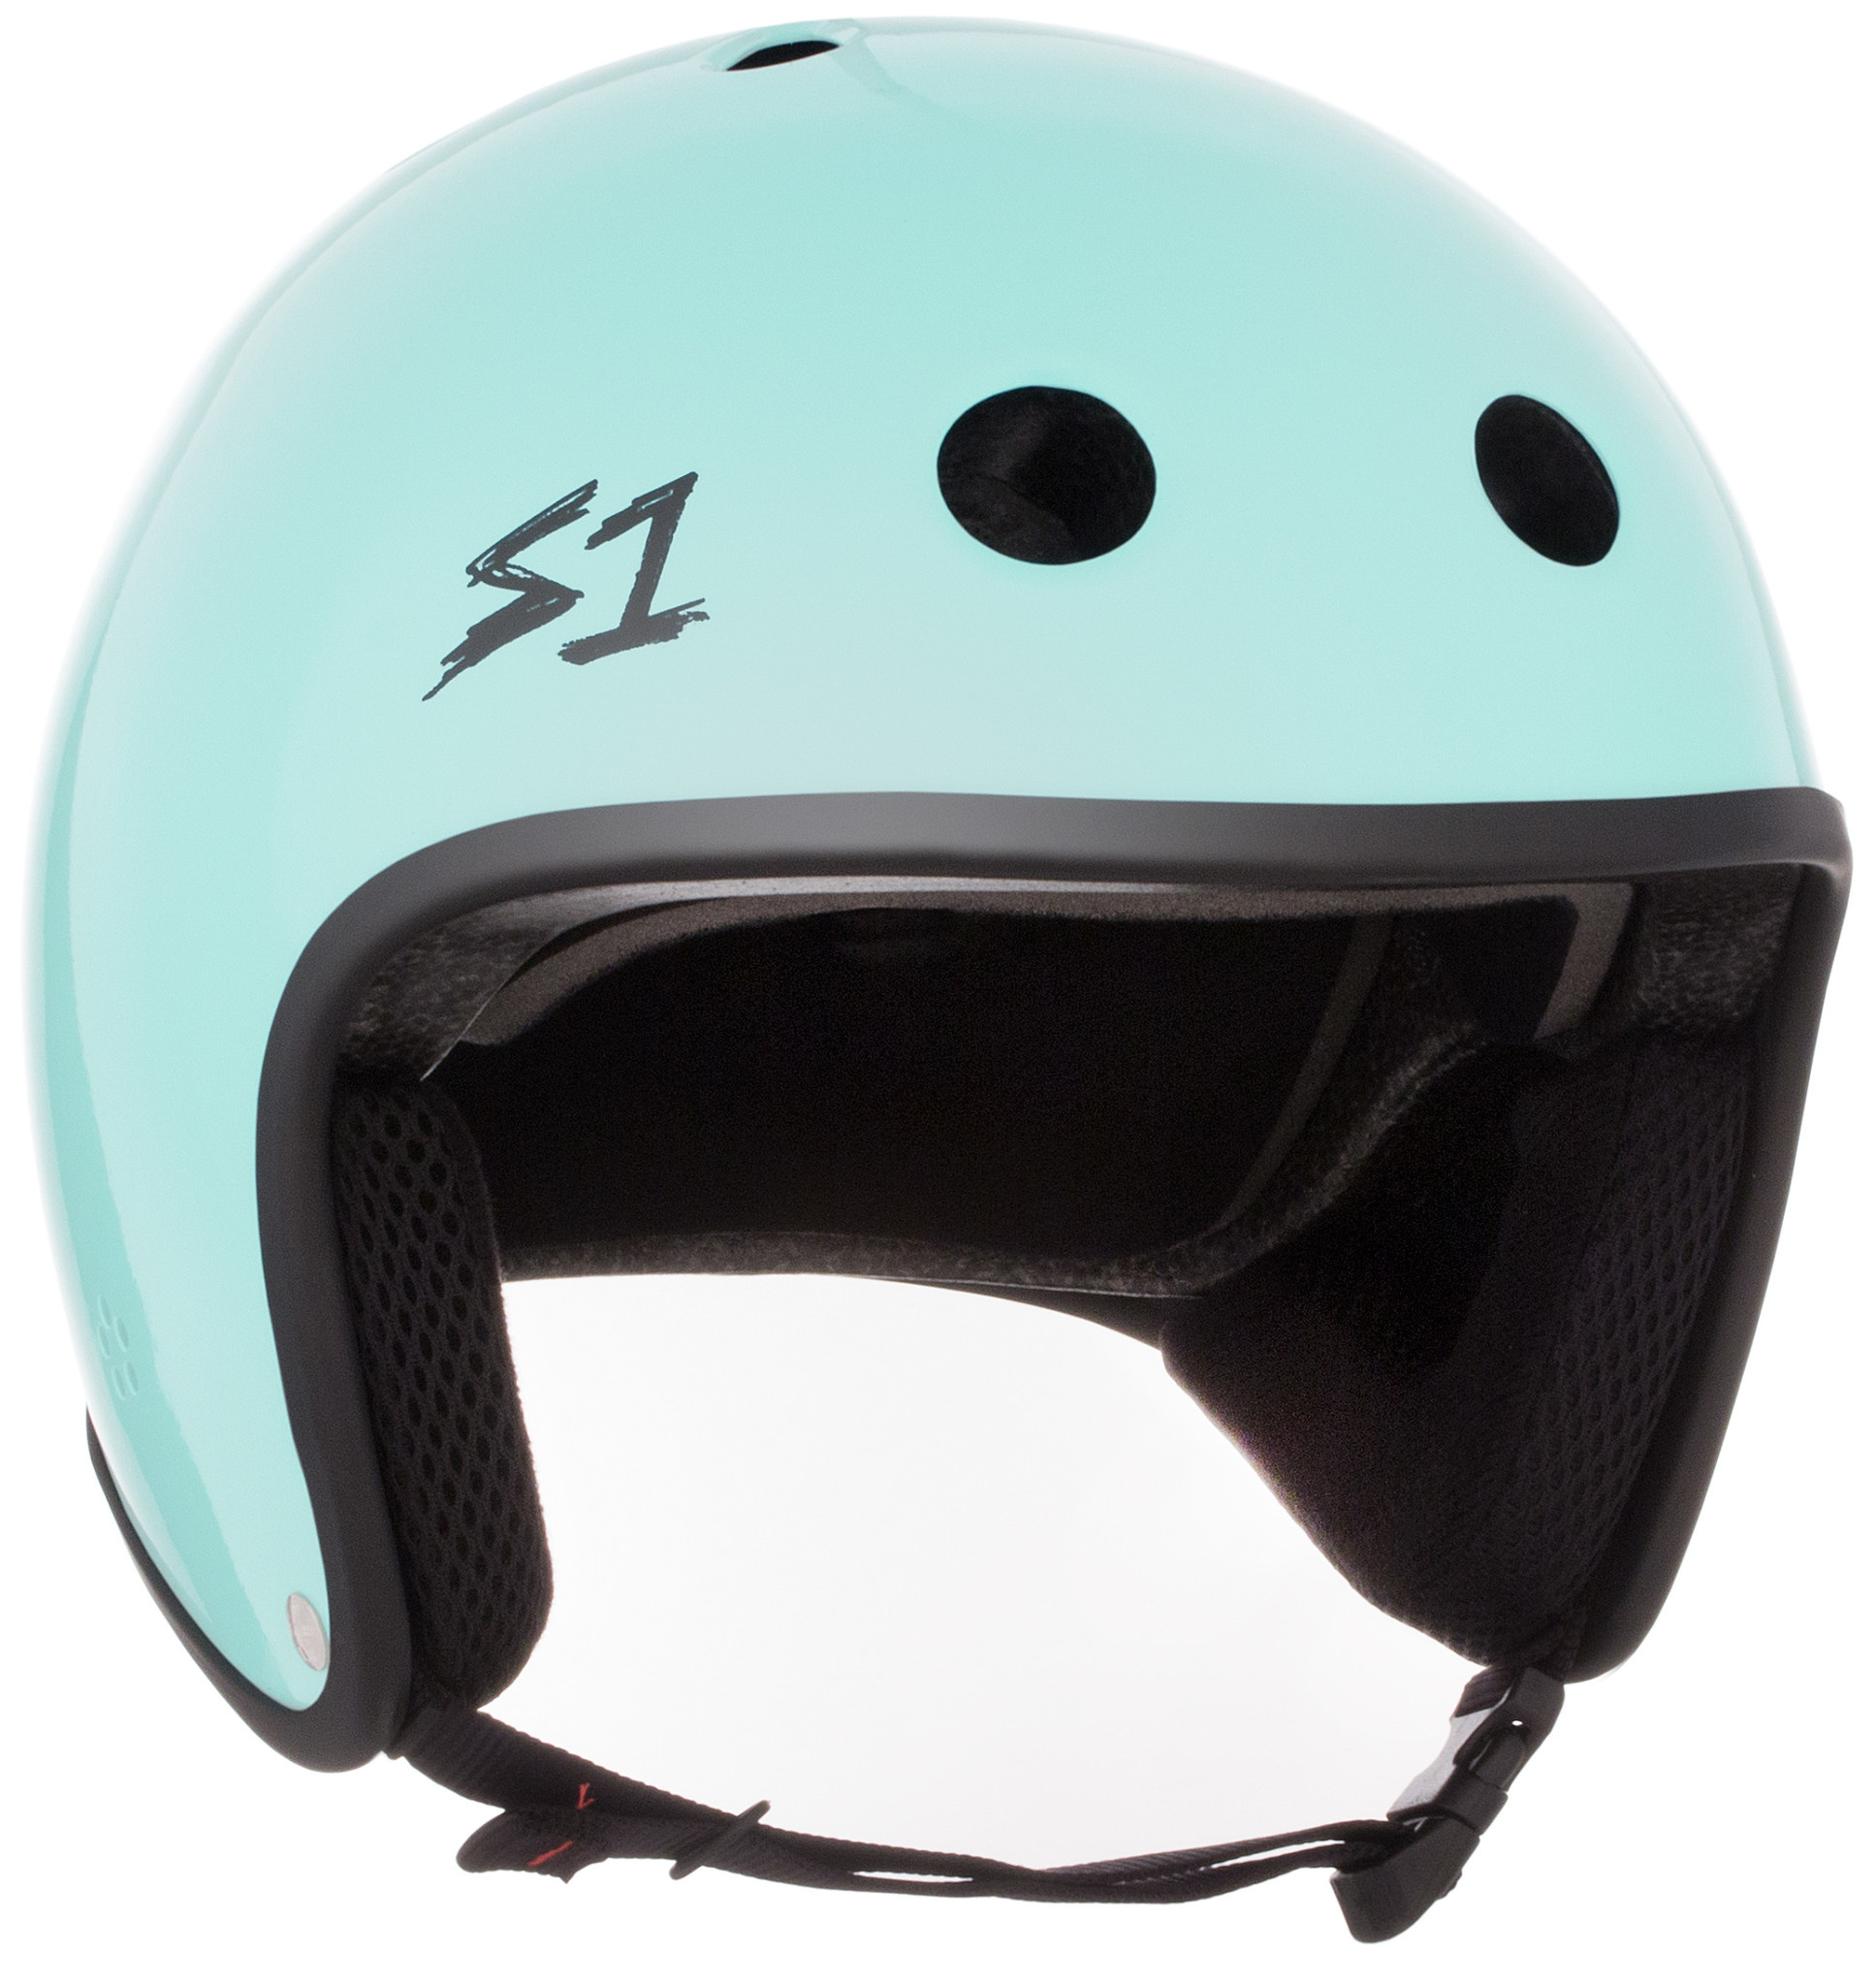 S-1 Retro Lifer Helmet - Lagoon Gloss